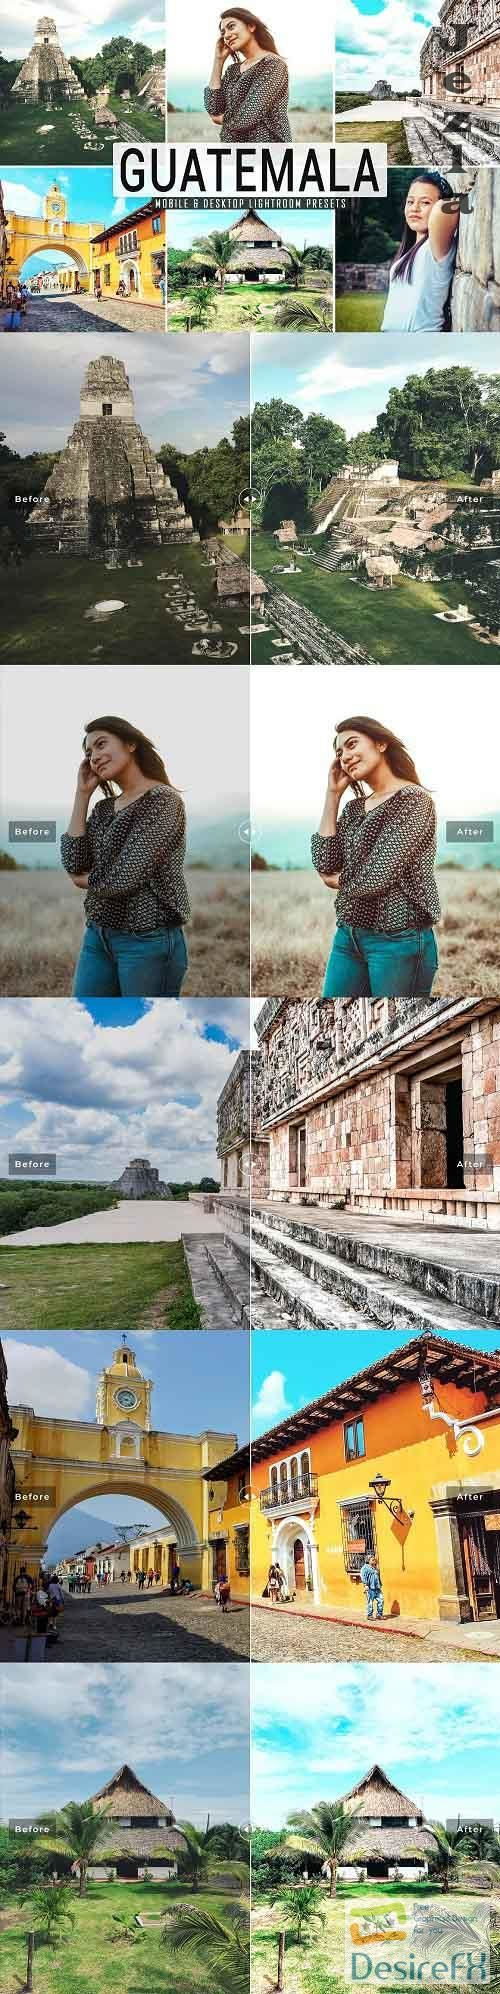 Guatemala Pro Lightroom Presets - 5542358 - Mobile & Desktop